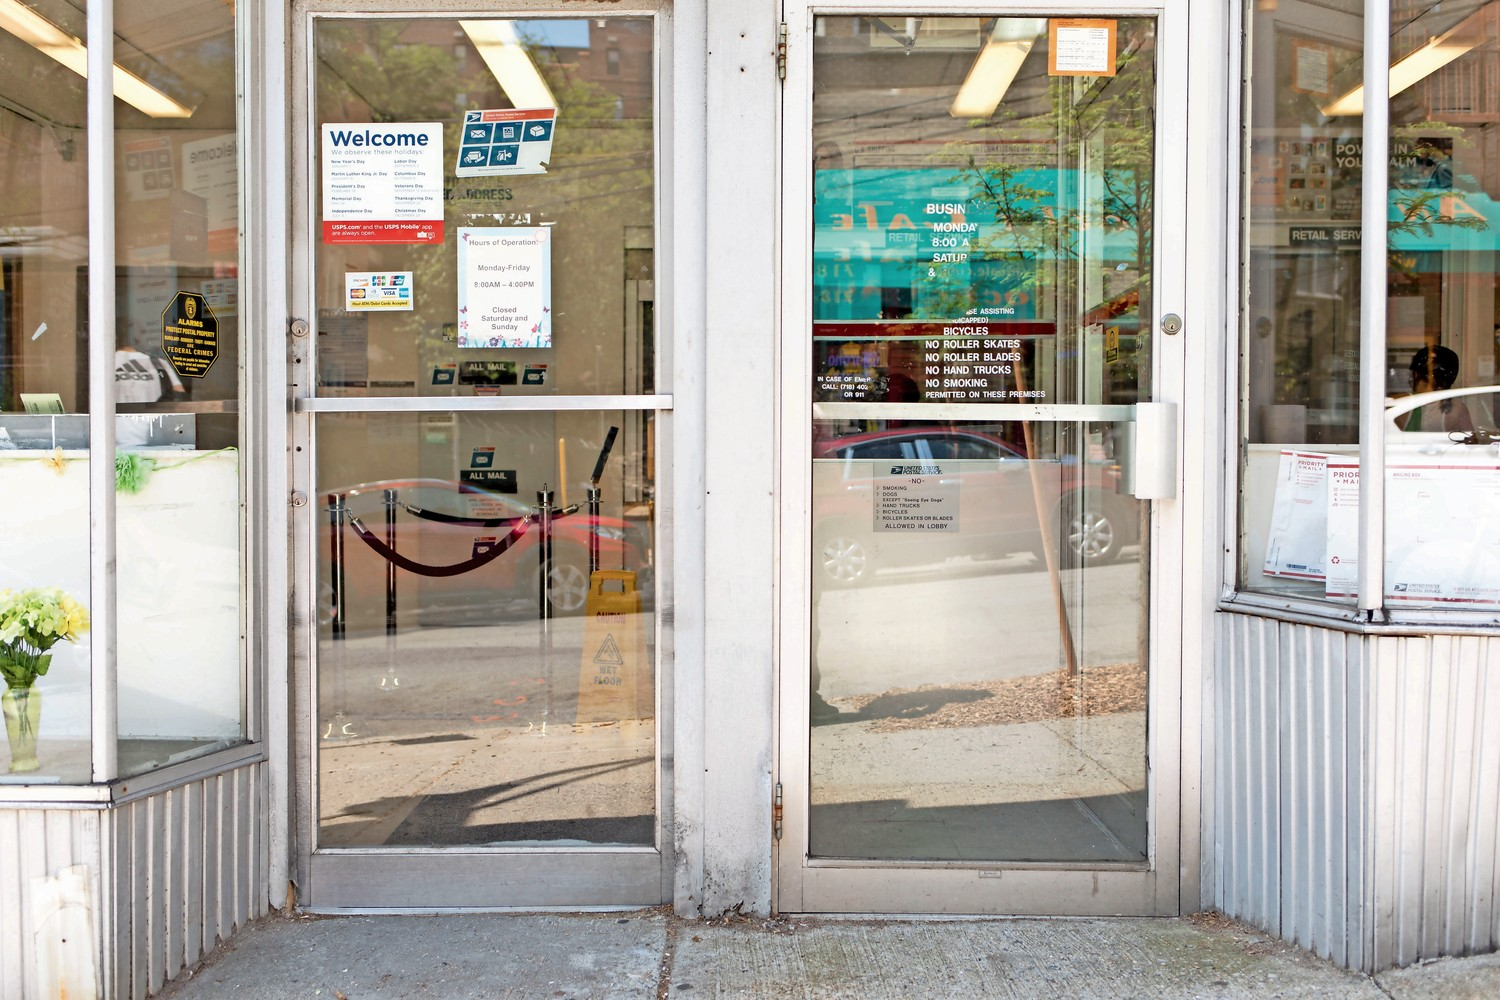 The post office on West 238th Street often suffers from understaffing to the point where the branch has to close for lunch.